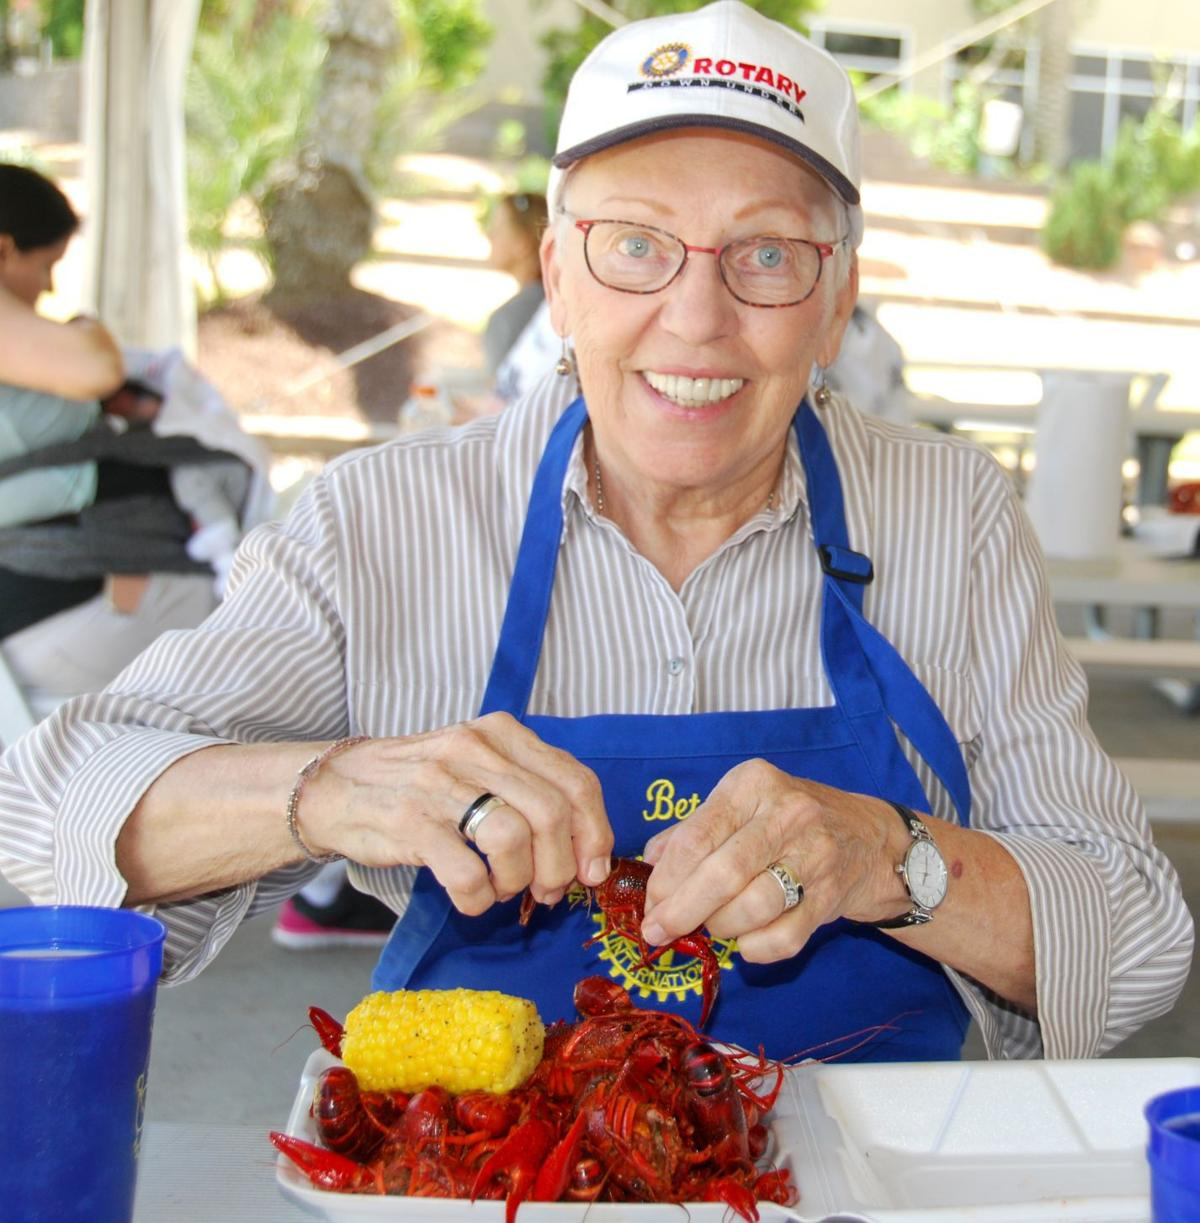 9th Annual Rotary Club of Galveston Crawfish Boil